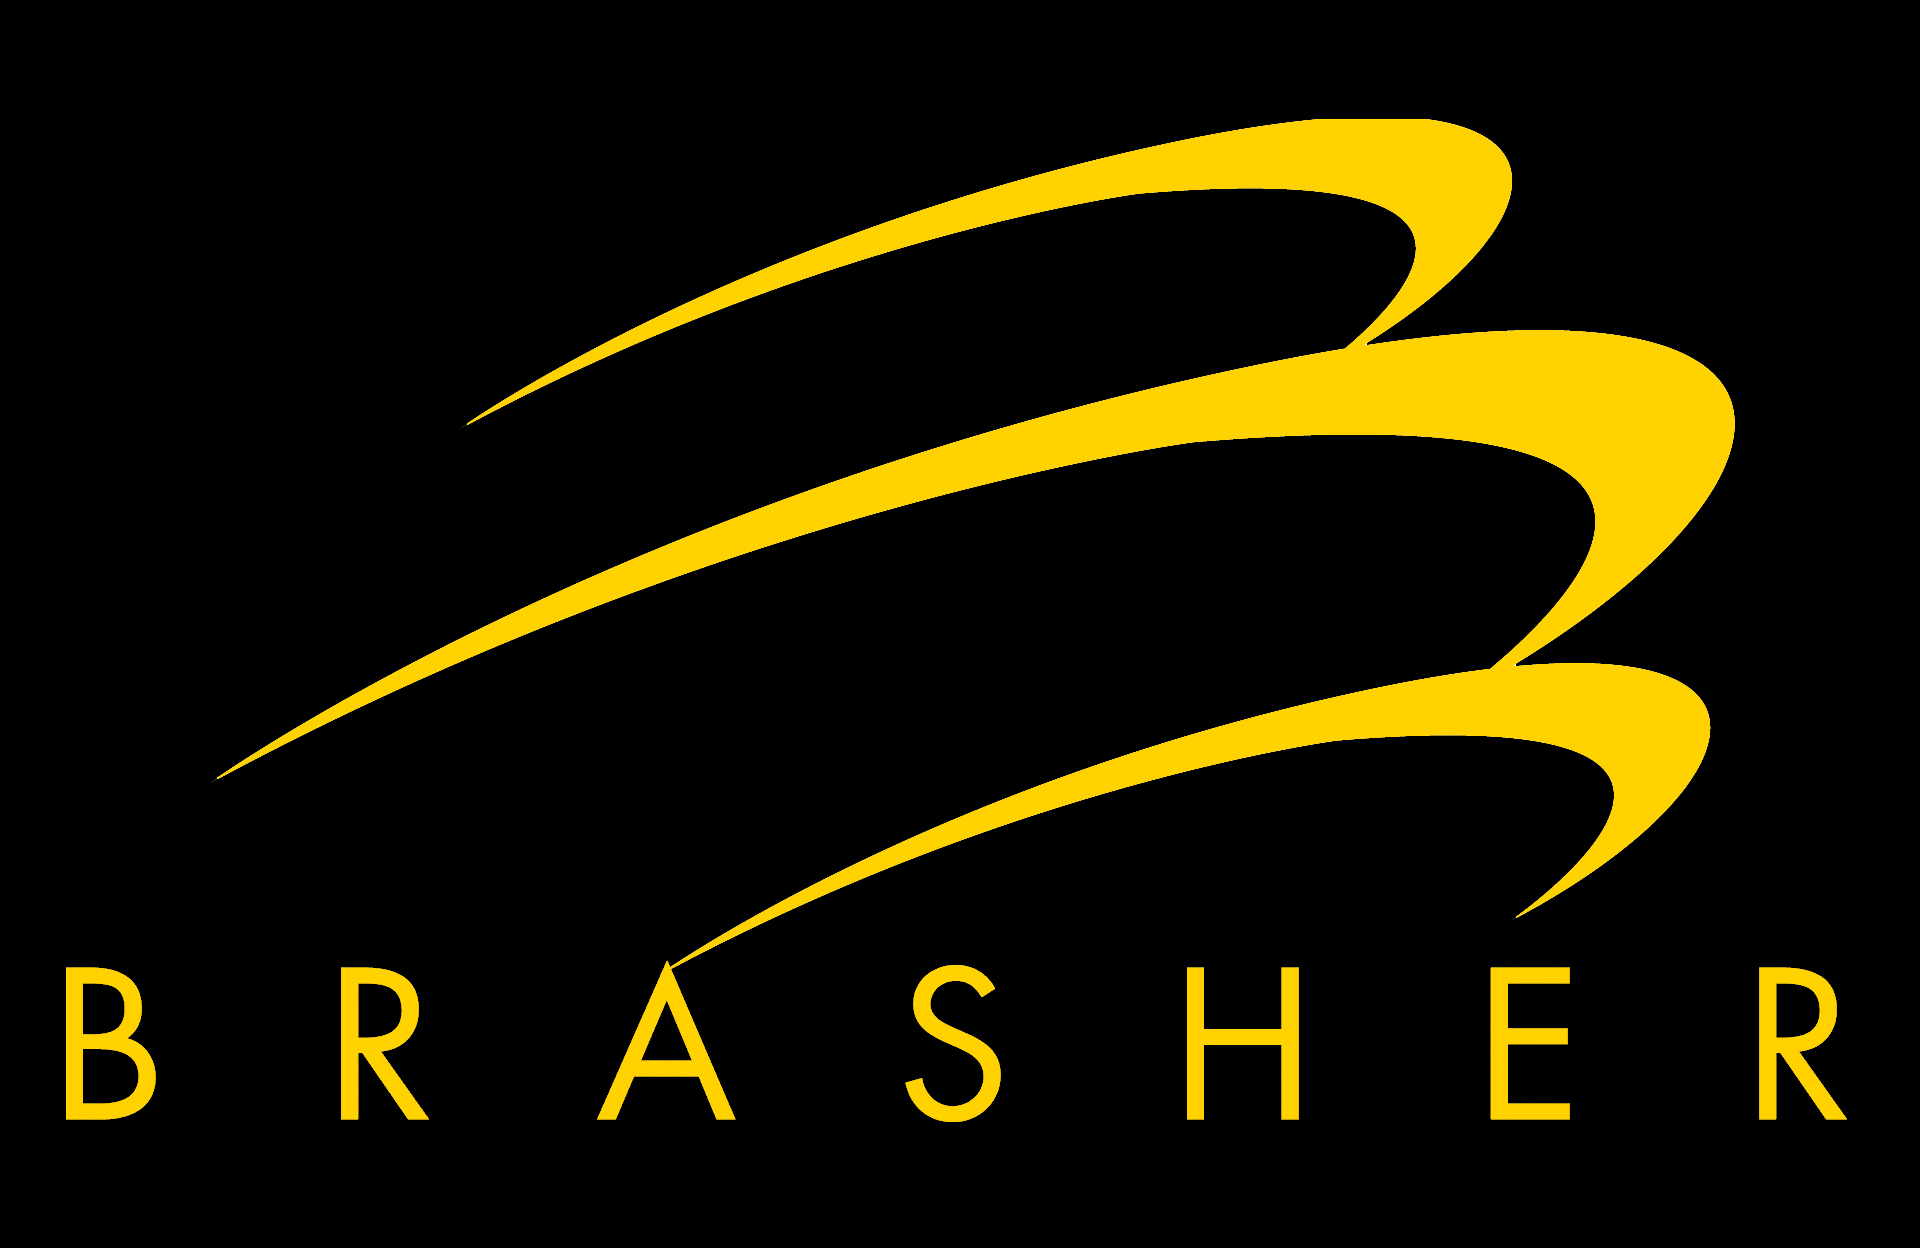 Brasher Design Logo